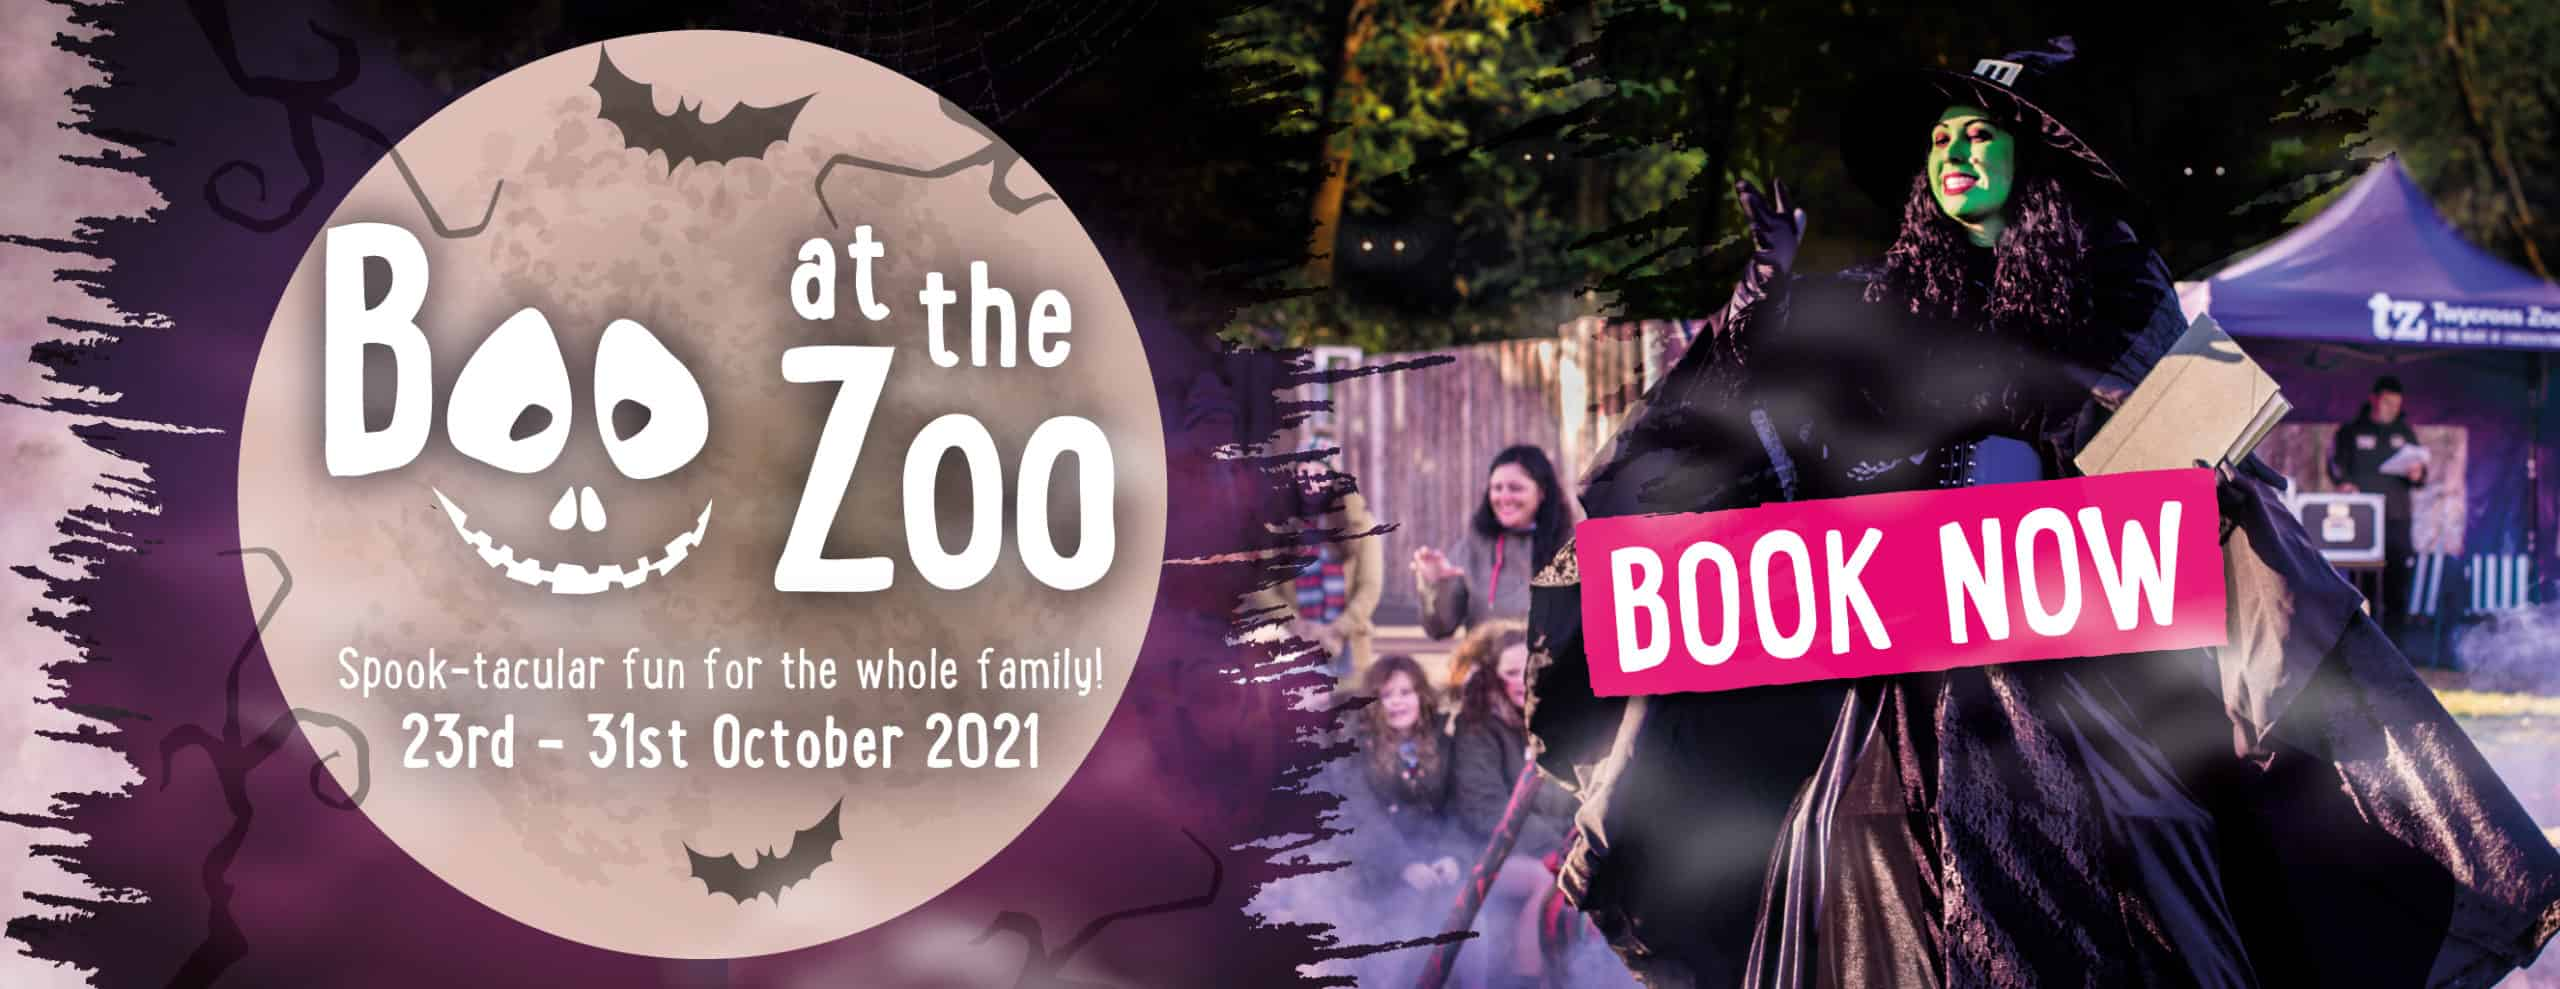 Boo at the Zoo - Derby Days Out